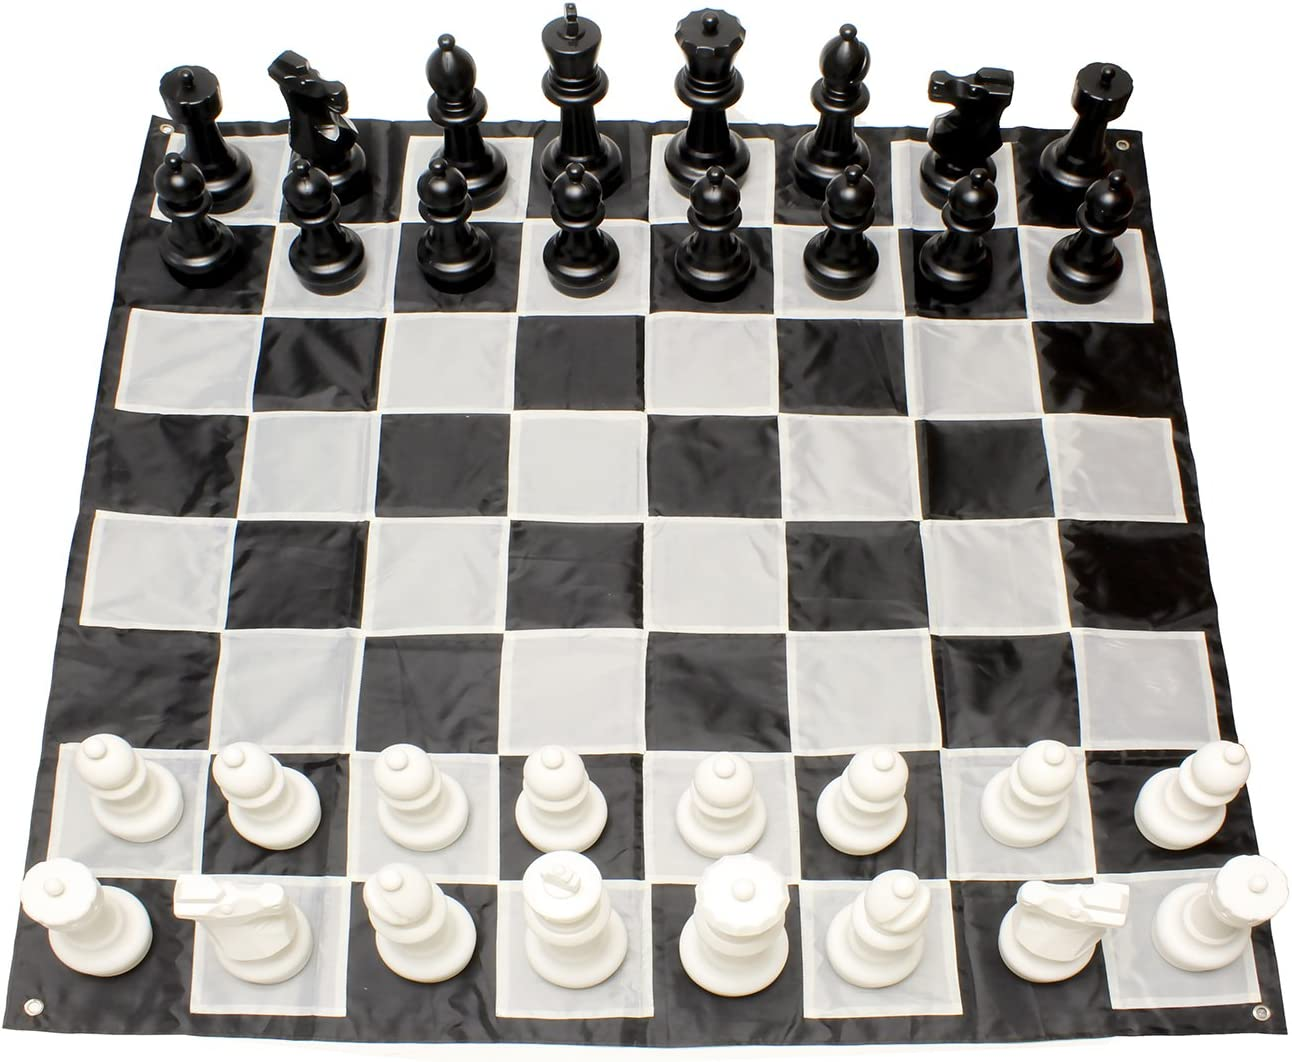 Get Out! Giant Chess Set Outdoor Games for Family Lawn Games – Large Chess Pieces & 5x5ft Giant Chess Board